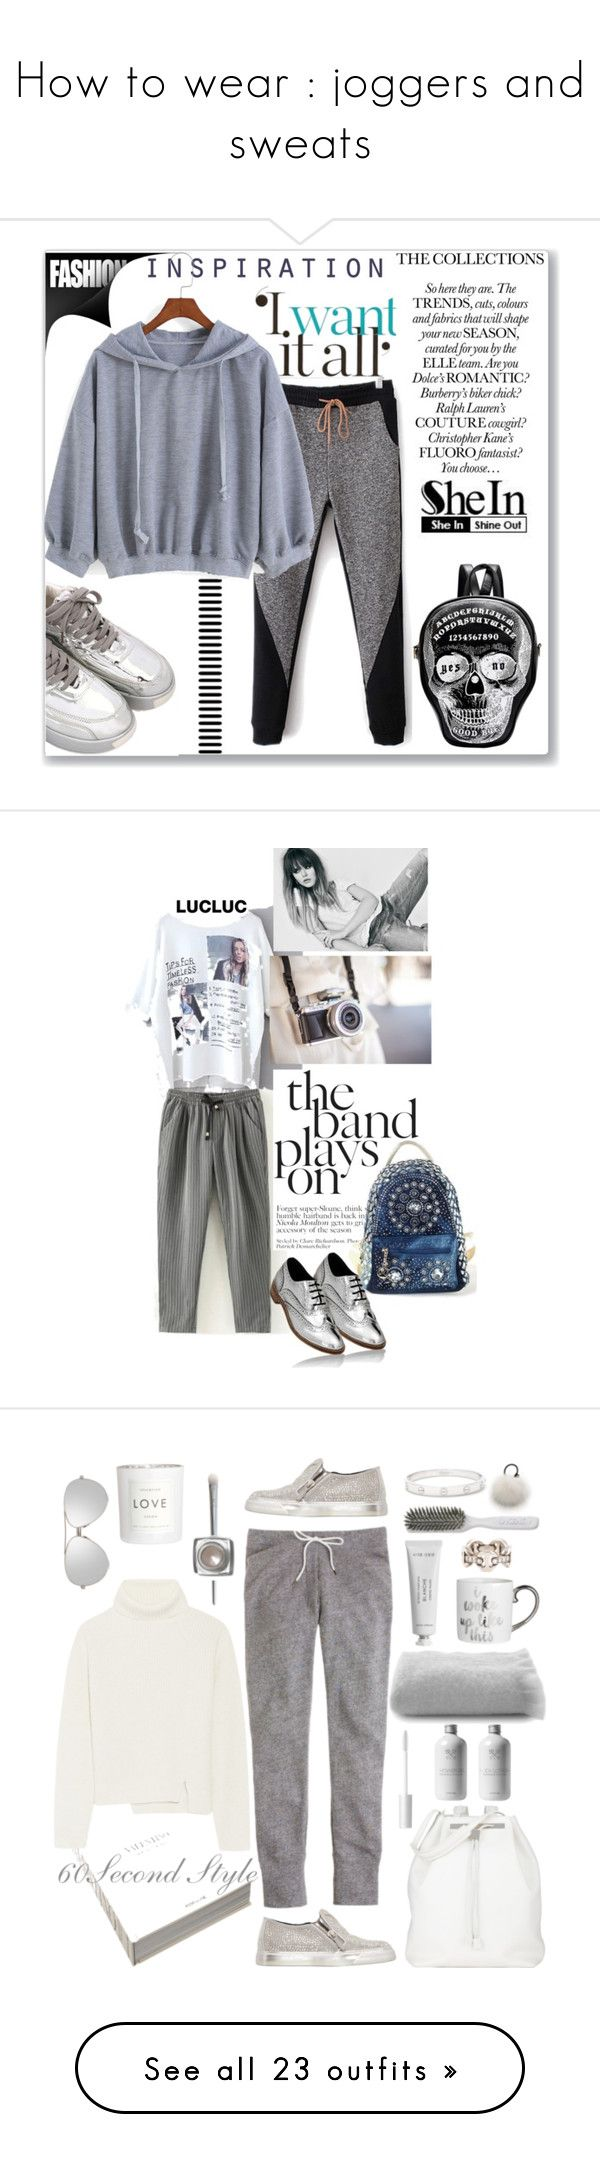 """""""How to wear : joggers and sweats"""" by maddophelia ❤ liked on Polyvore featuring Assouline Publishing, J.Crew, The Row, Giuseppe Zanotti, Proenza Schouler, Belle Epoque, Eugenia Kim, Byredo, H&M and Kent"""